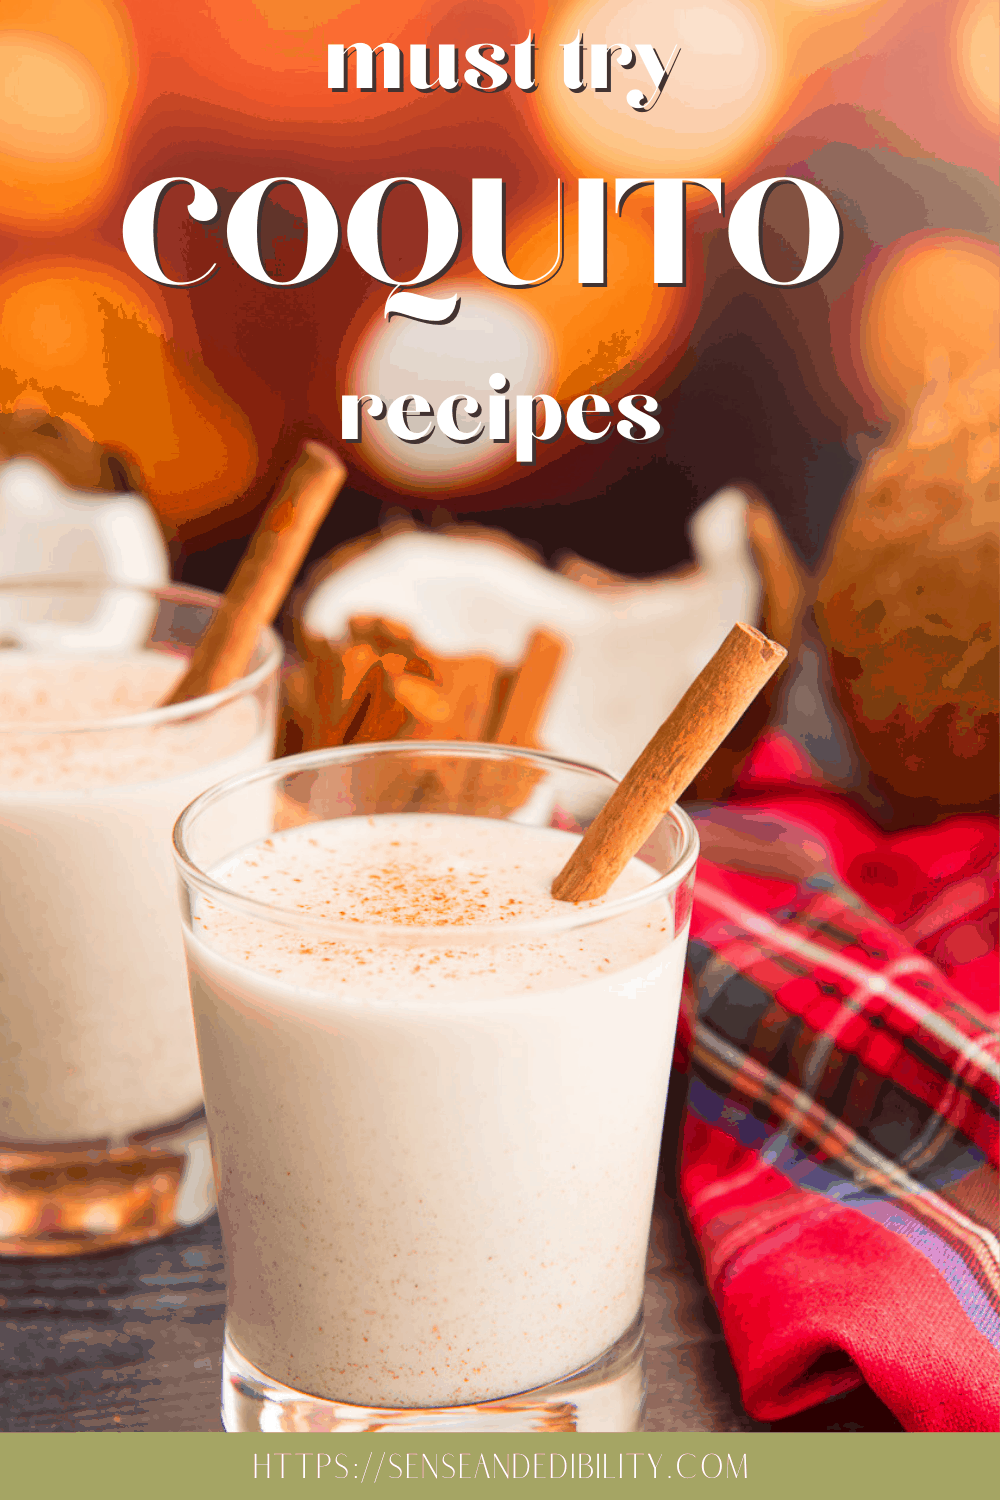 Coquito doesn't have to be confined to a drinking glass. Check out these amazing coquito recipes for more ideas on how to incorporate this delicious Puerto Rican drink in your foods and drinks. #coquito #coquitorecipes #coquitorecipe #coquitopuertorriqueno #PuertoRicanrecipes #PuertoRicanholidaydrink #eggnog #ponche #holidaydrink #coconut #rumdrinks via @ediblesense